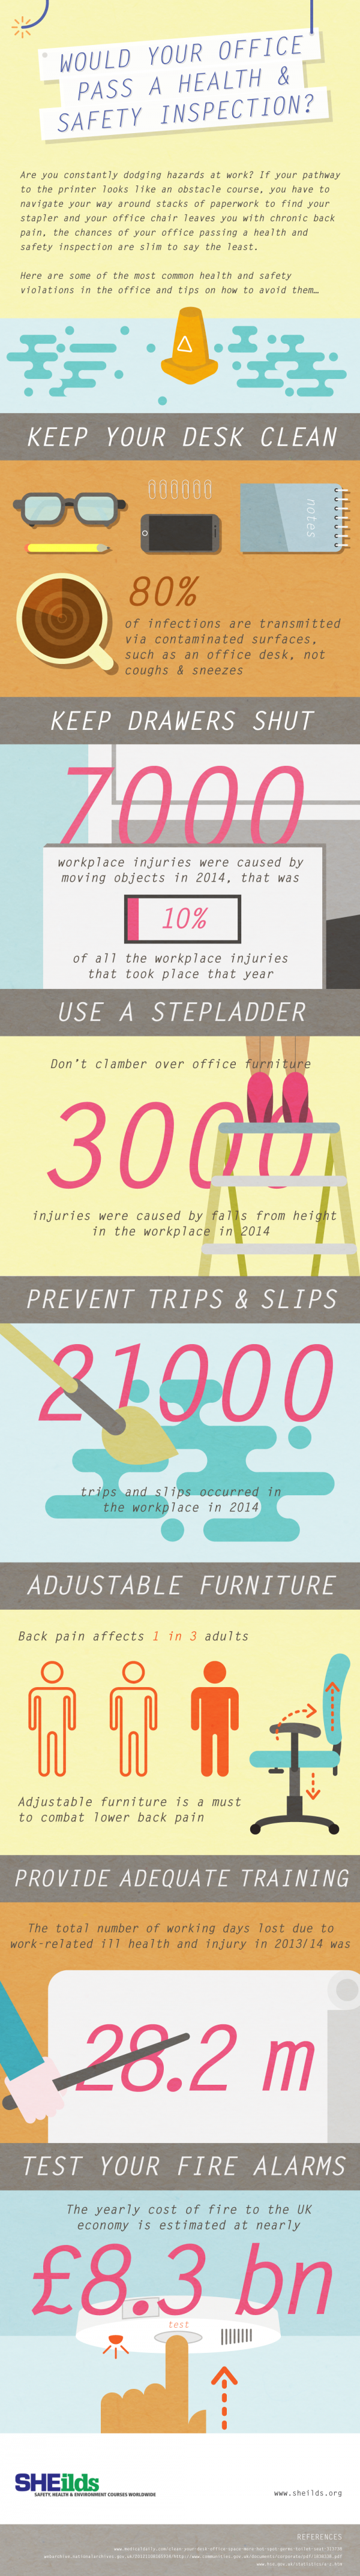 Sheilds_Infographic_Would_your_office_pass_a_healthandsafety_inspection